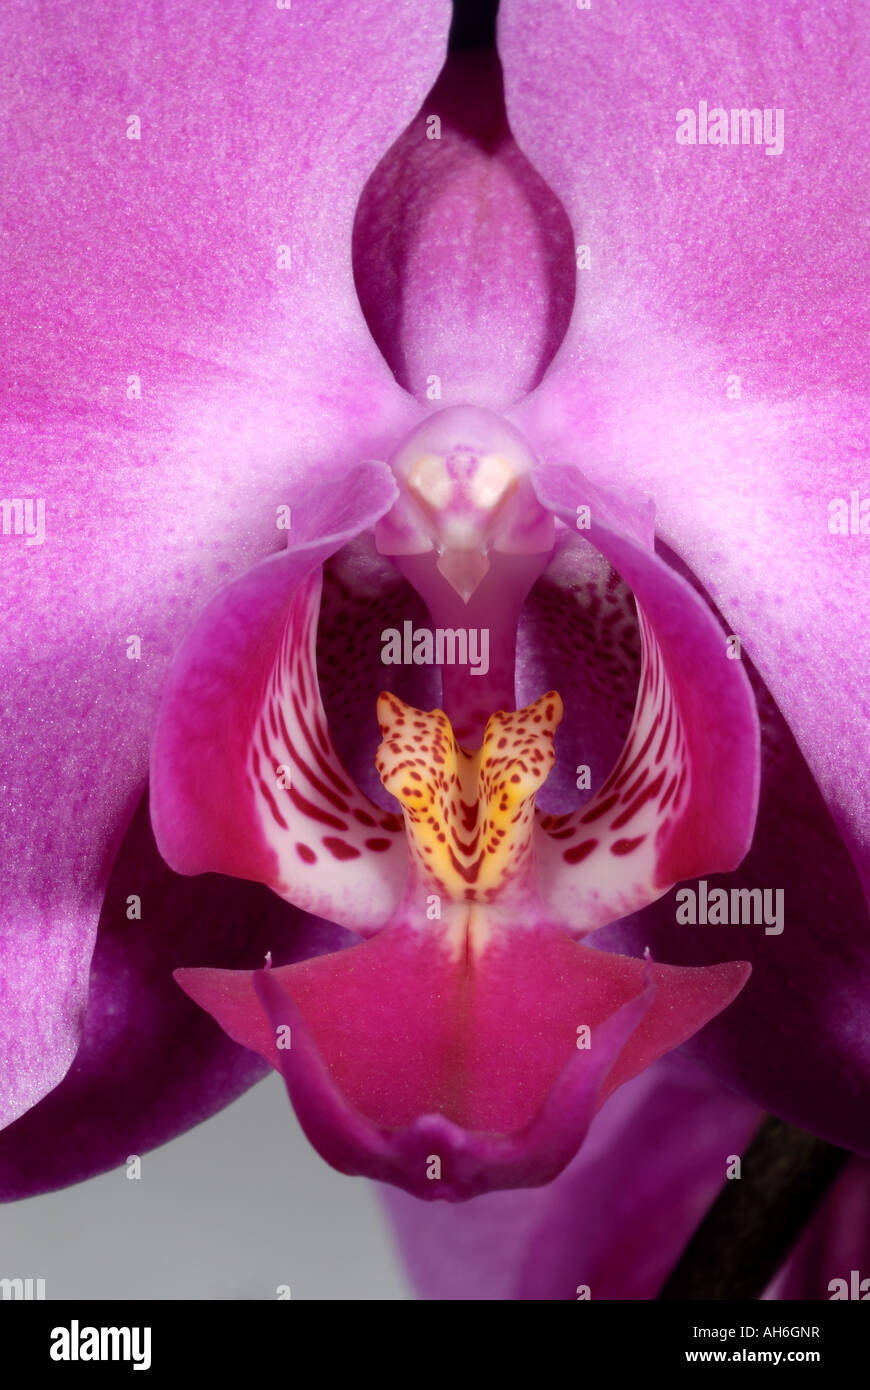 Flower and flower parts of an orchid Phalaenopsis pot plant - Stock Image